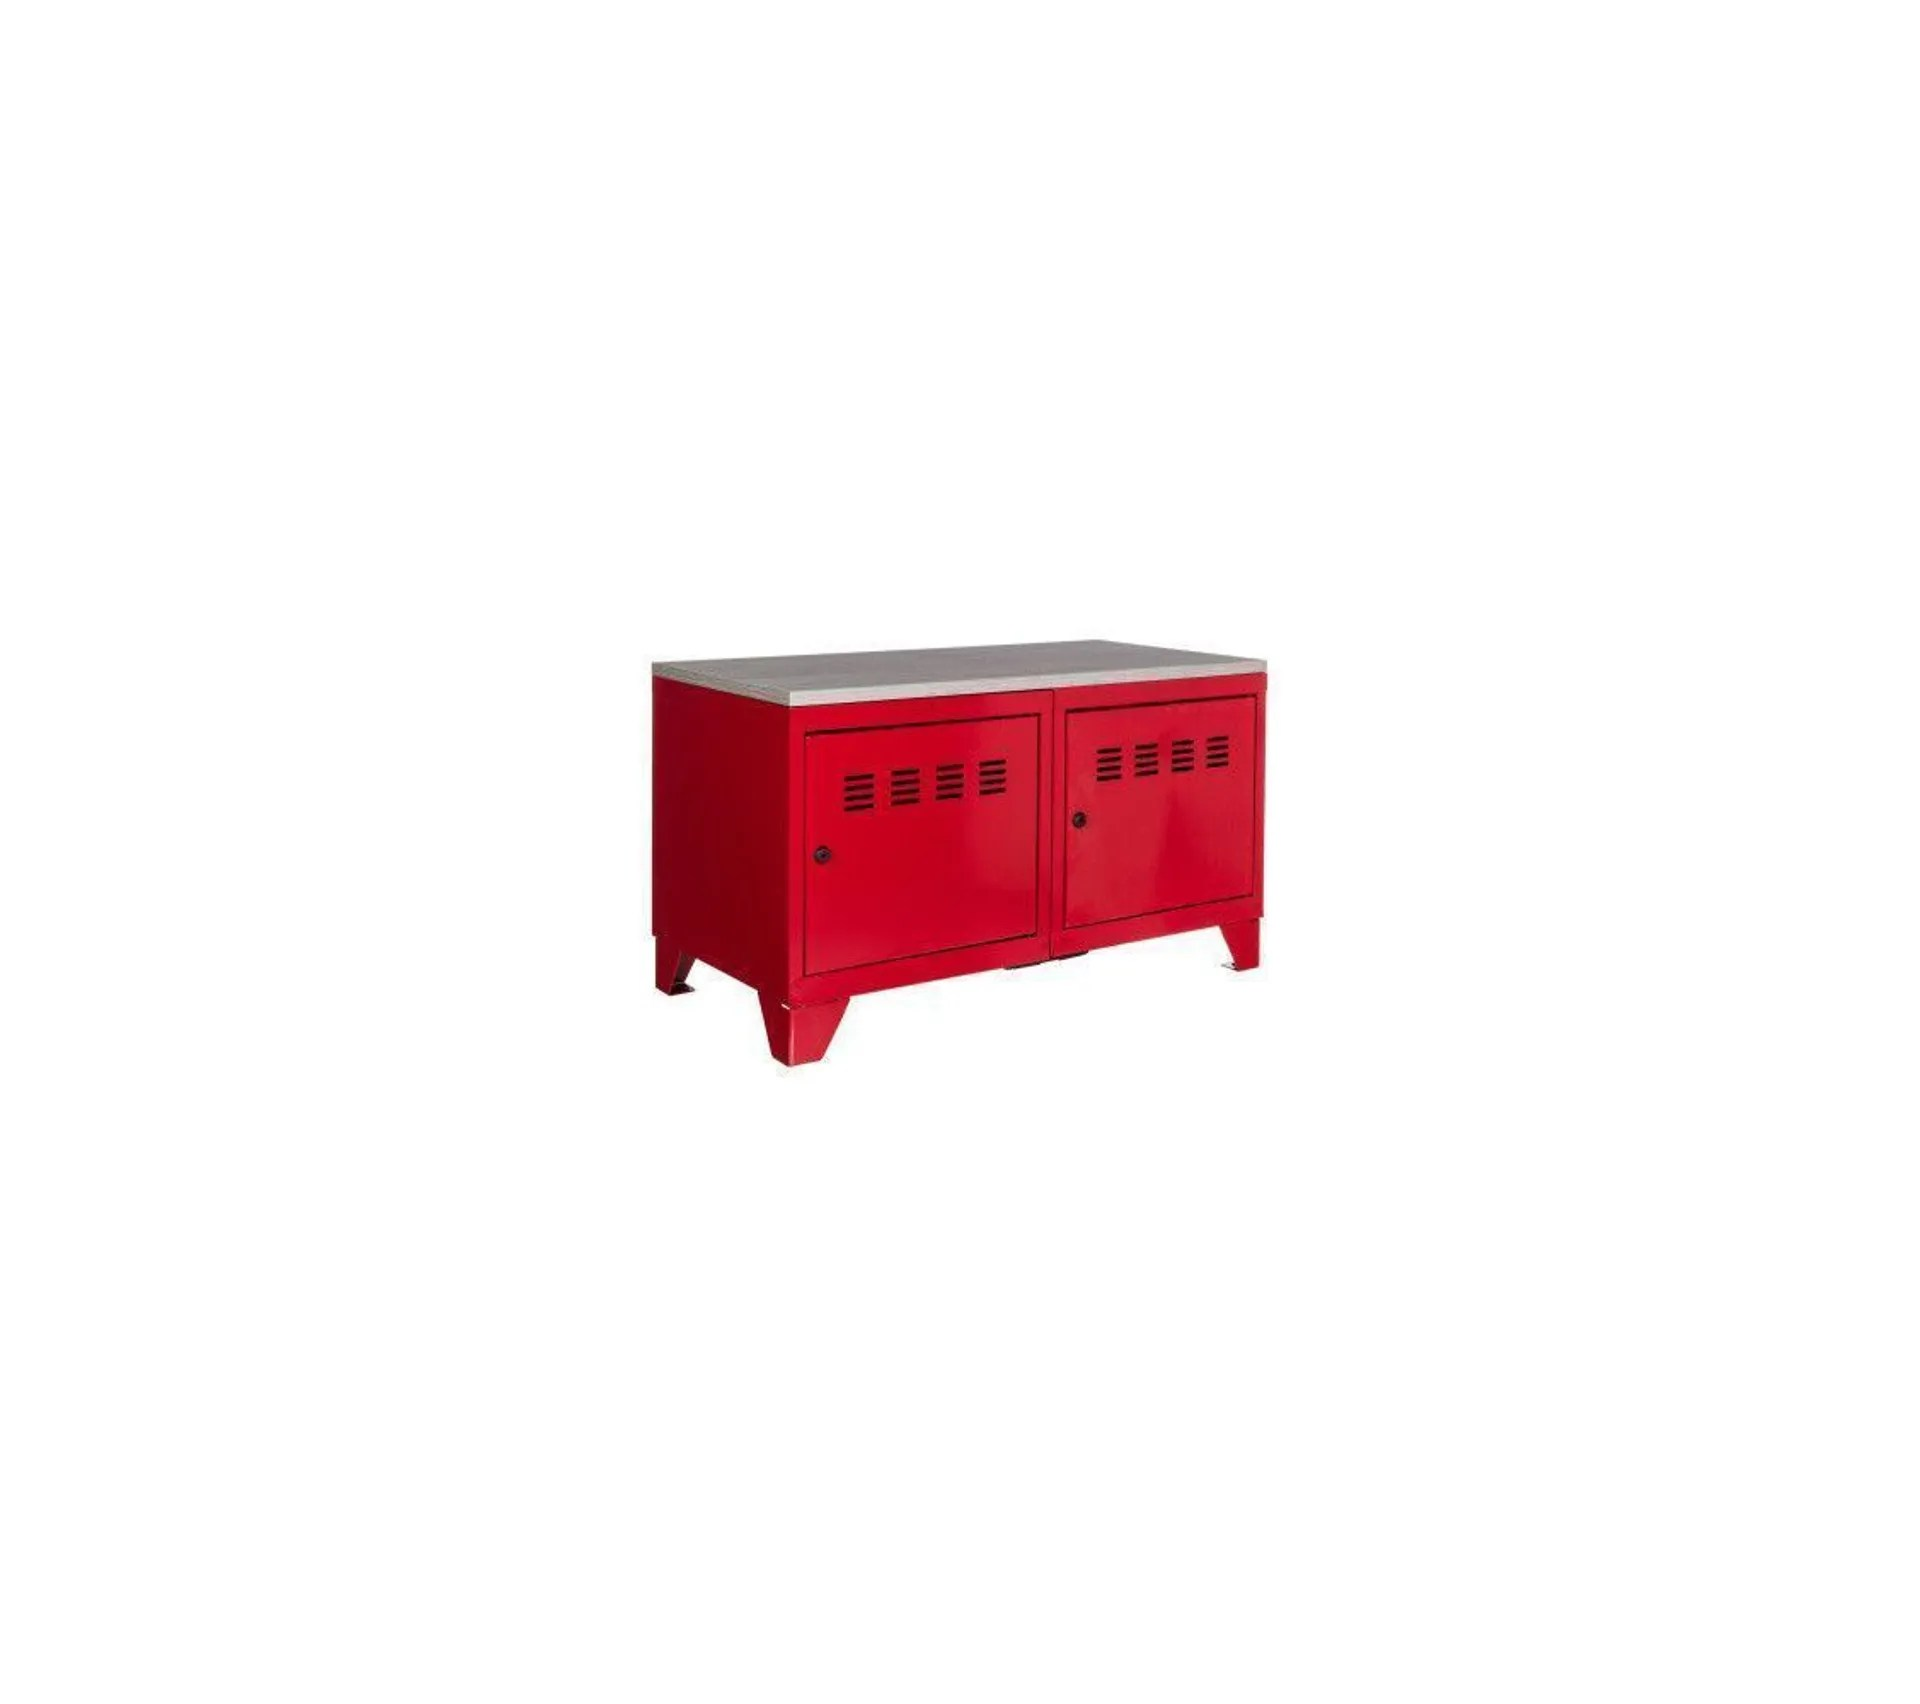 meuble bas industriel metal rouge